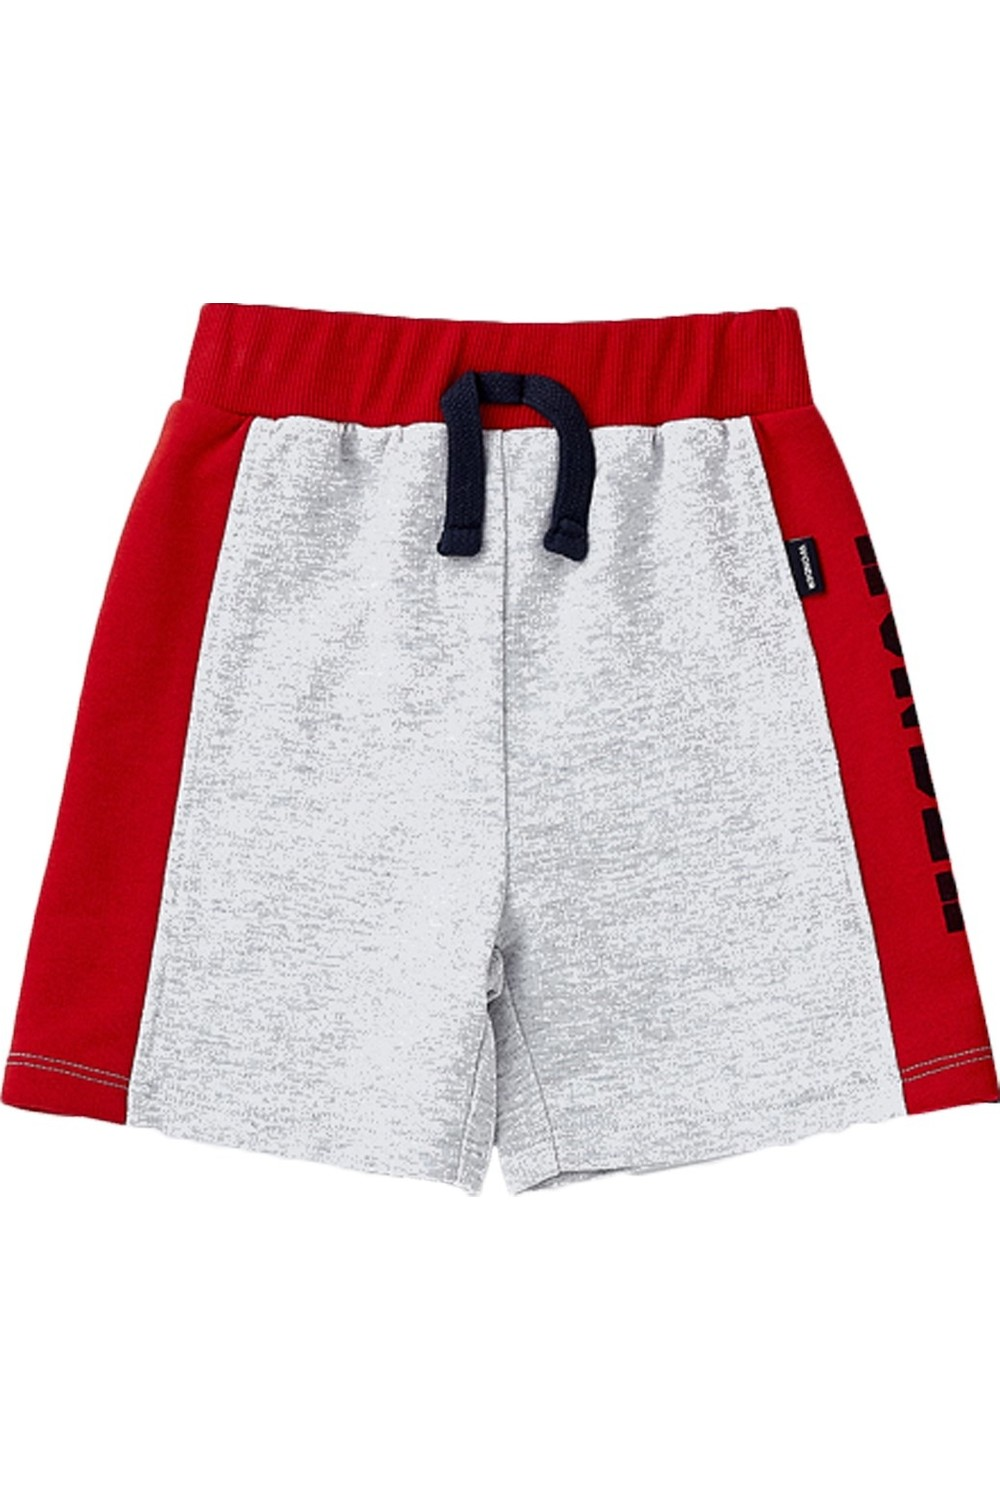 Wonder Kids Children's Shorts Wk19Ss8304-G